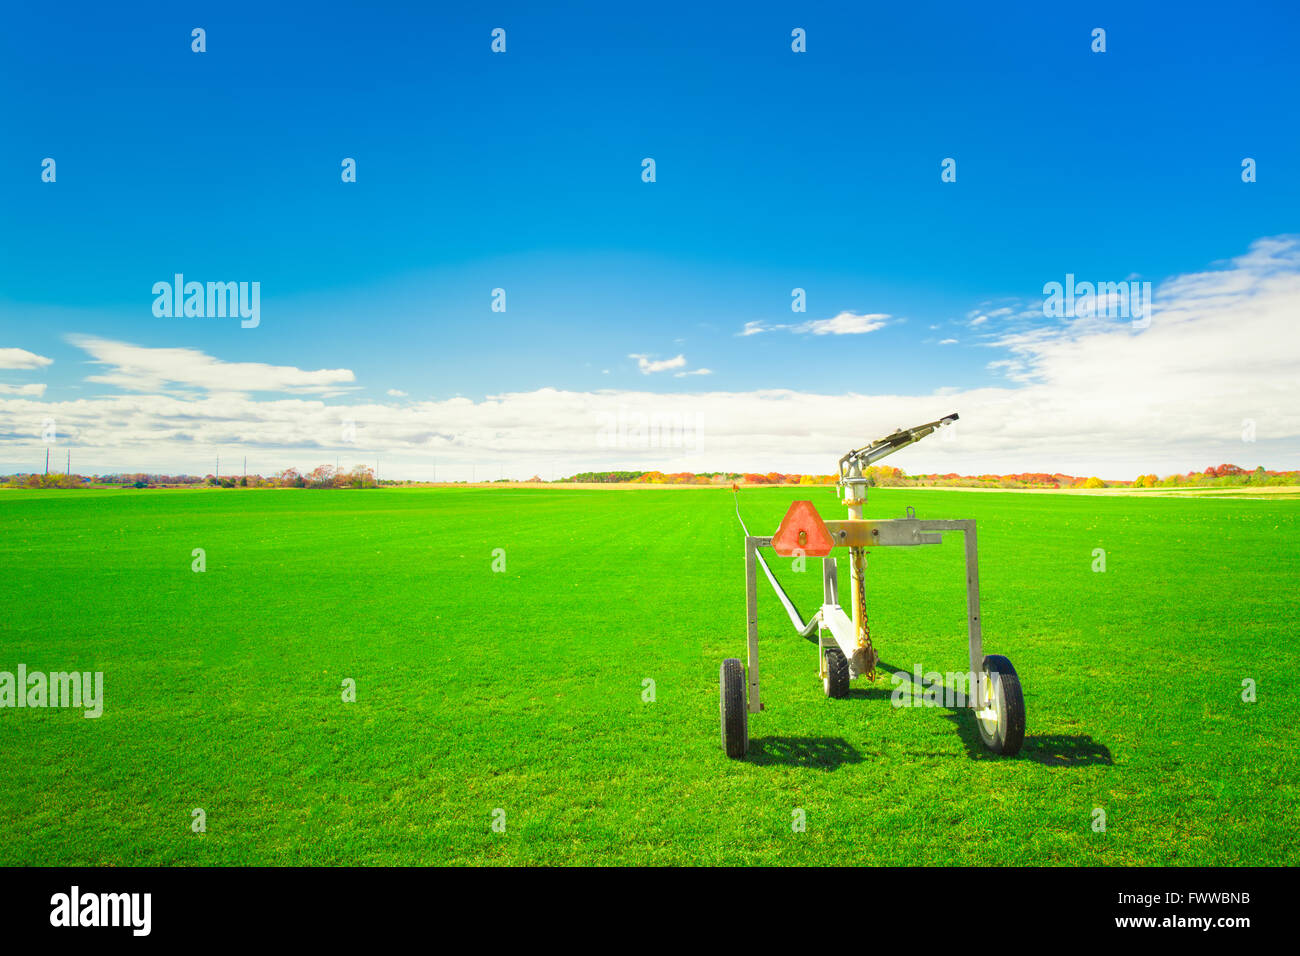 Vibrant green grass field on sod farm with sprinkler irrigation equipment and blue sky - Stock Image